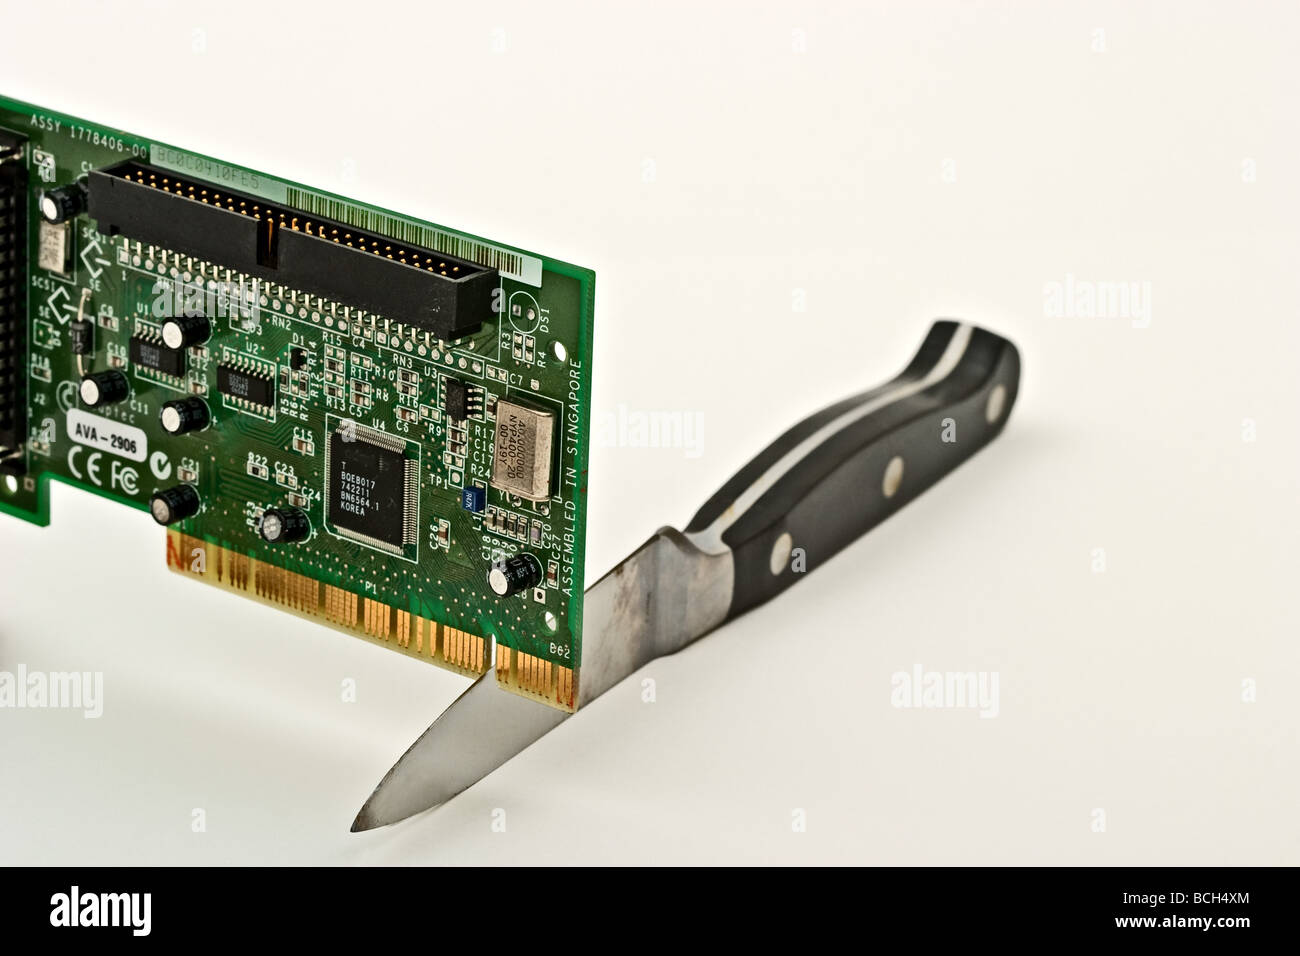 Circuit Board Cut Out Stock Photos Cutting Sharp Knife Into A Image